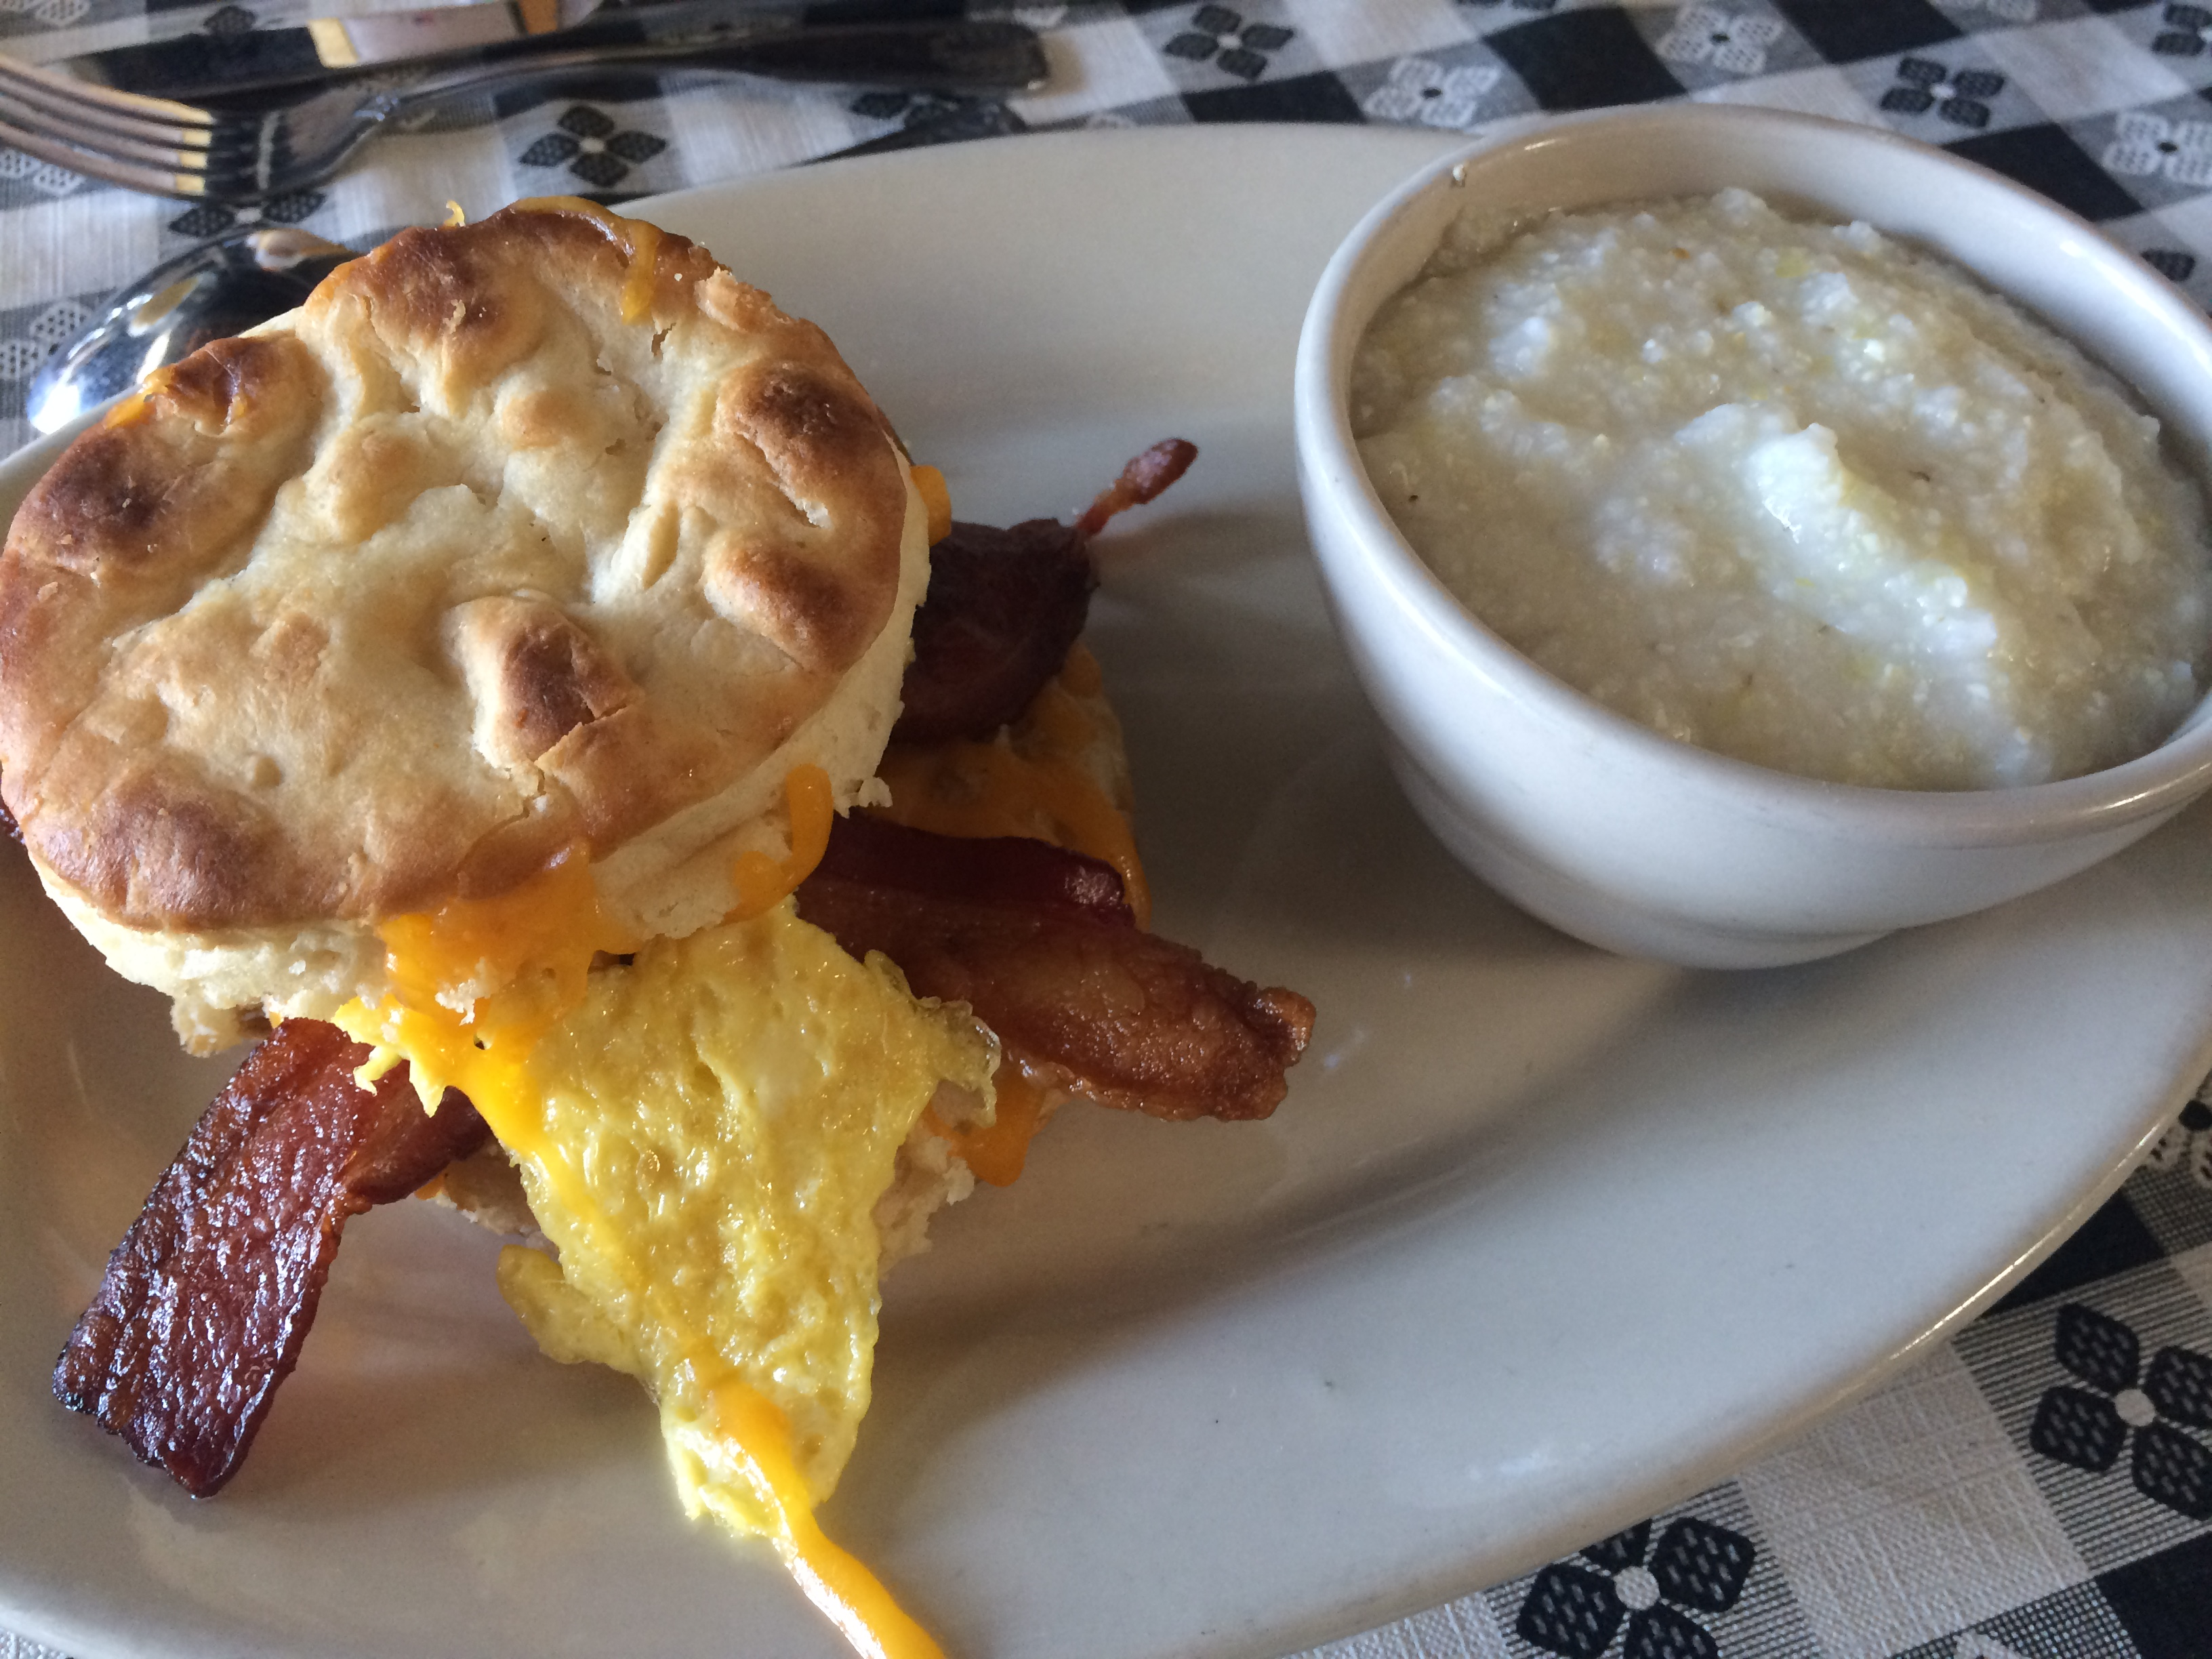 Stuffed Biscuit 'n Grits